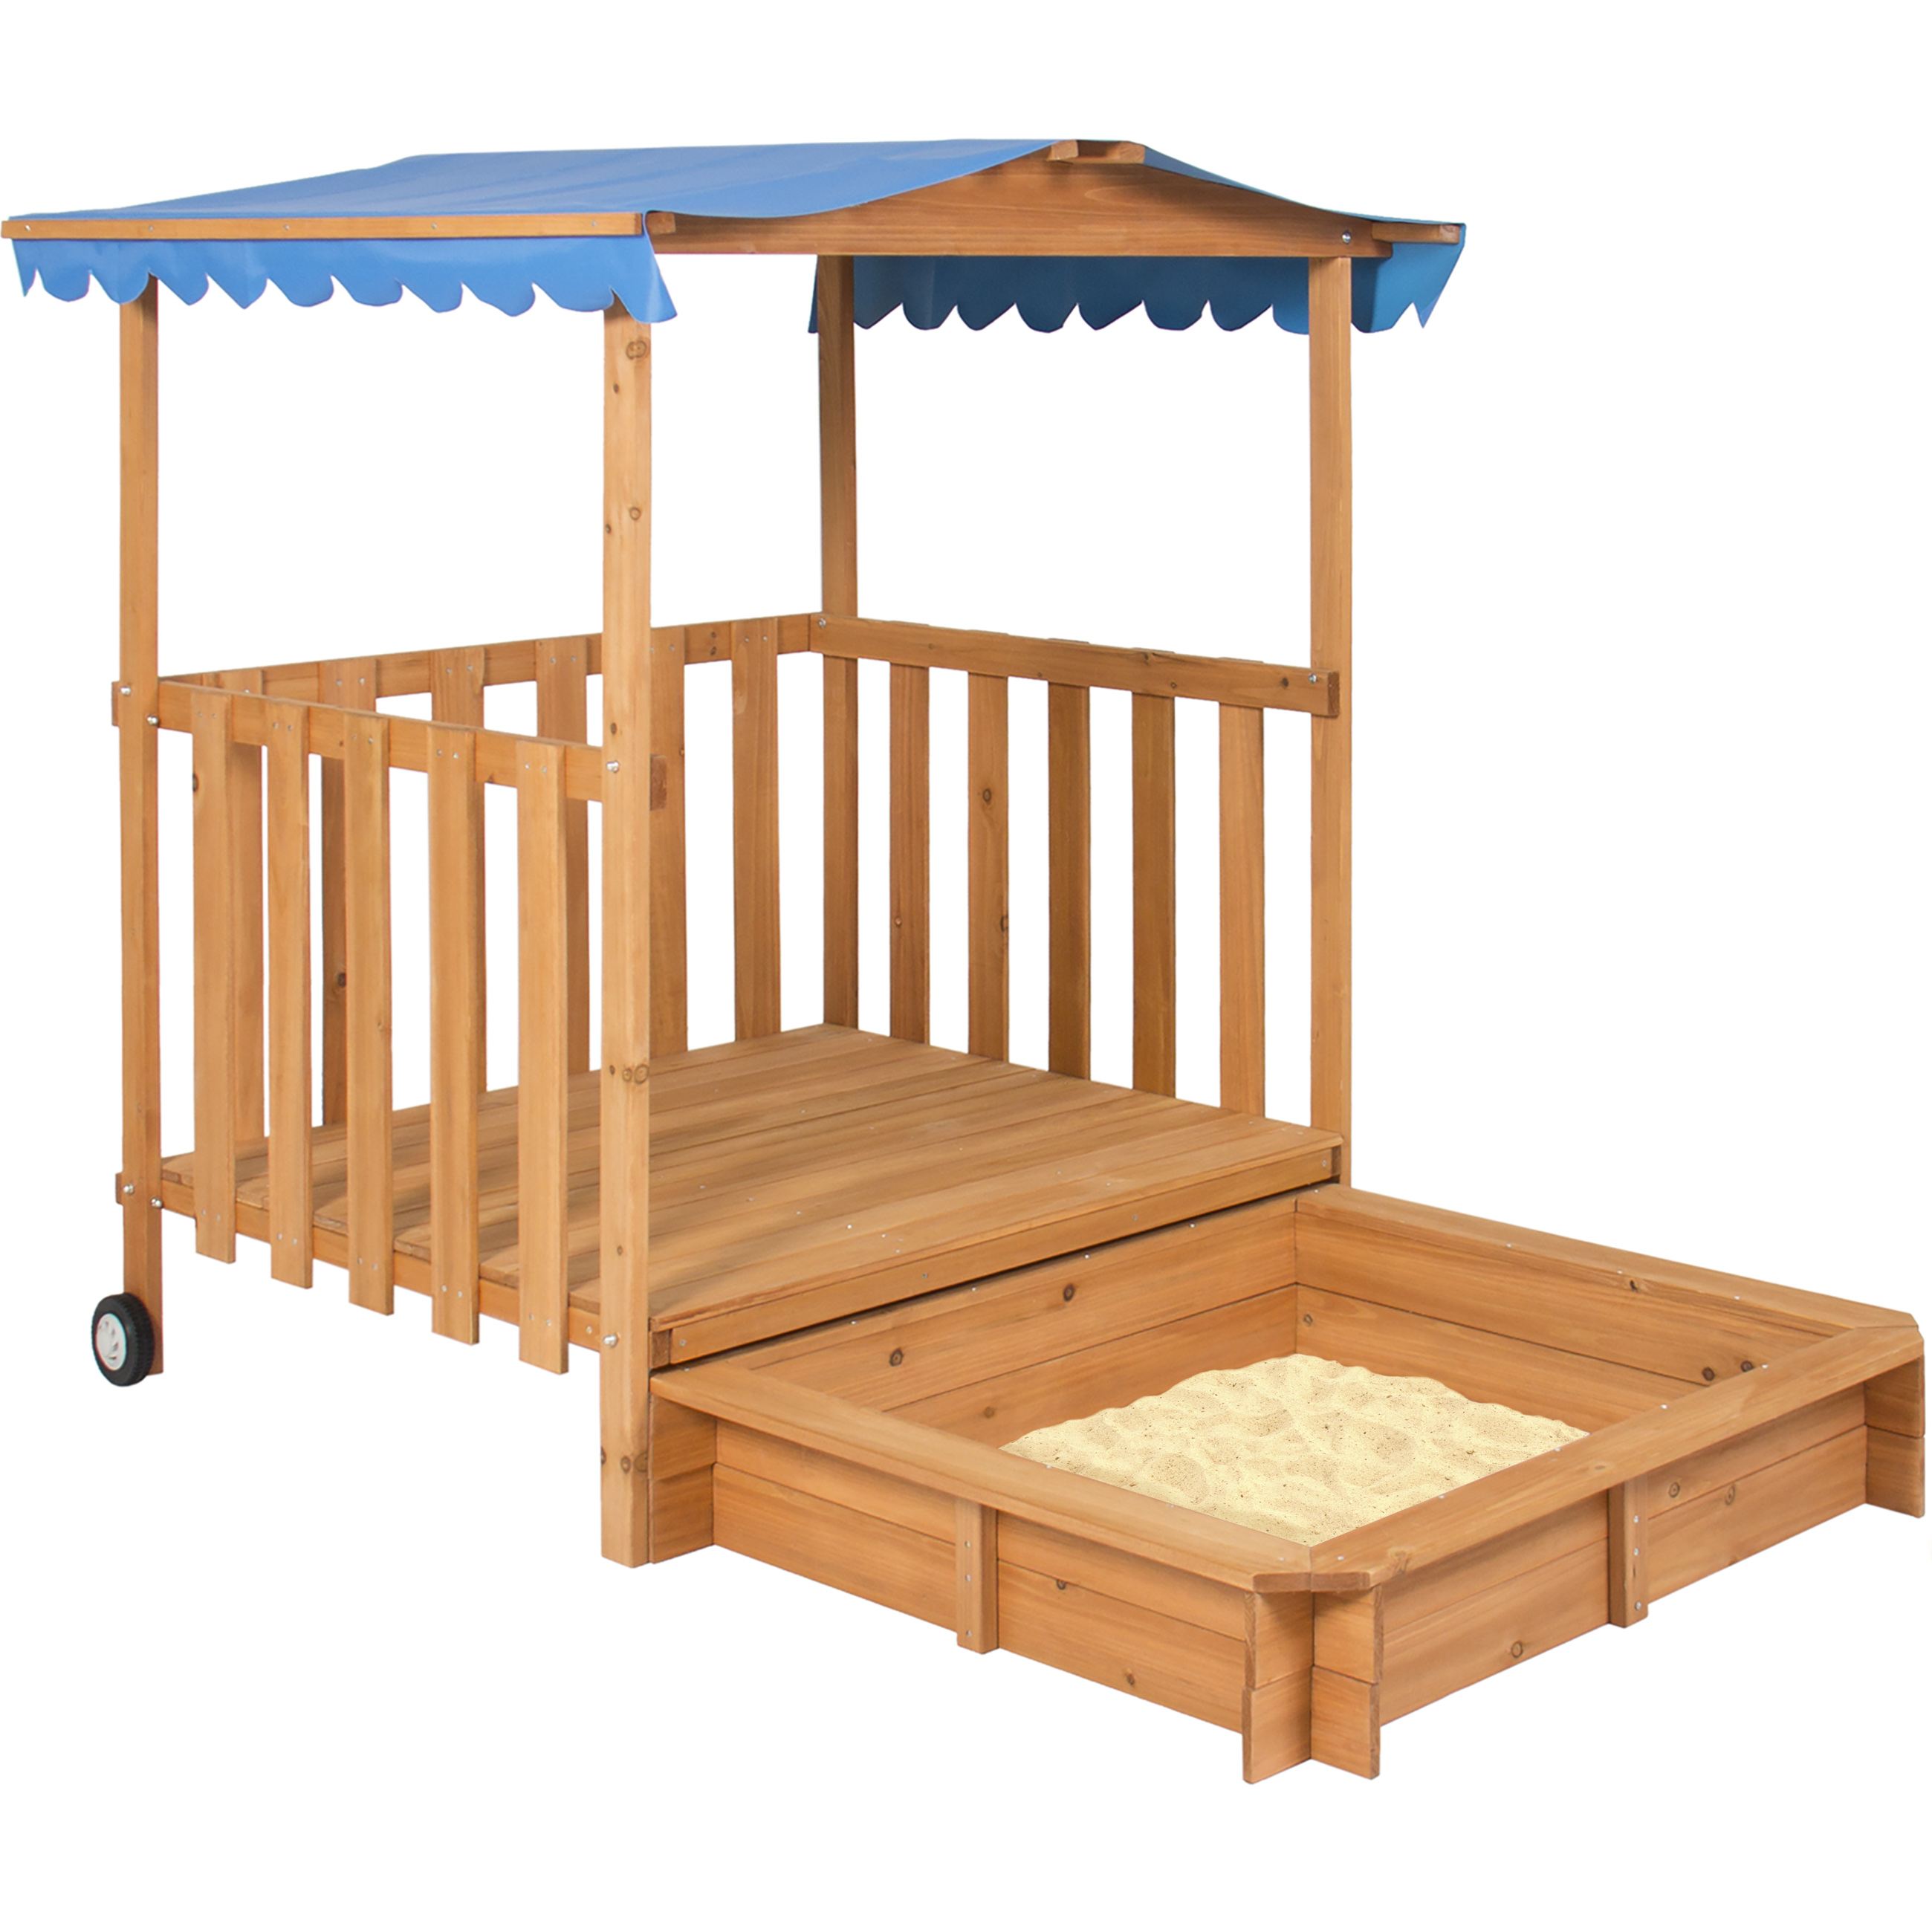 Kids Outdoor Retractable Playhouse Fort W/ Sandbox Childrens Play Area